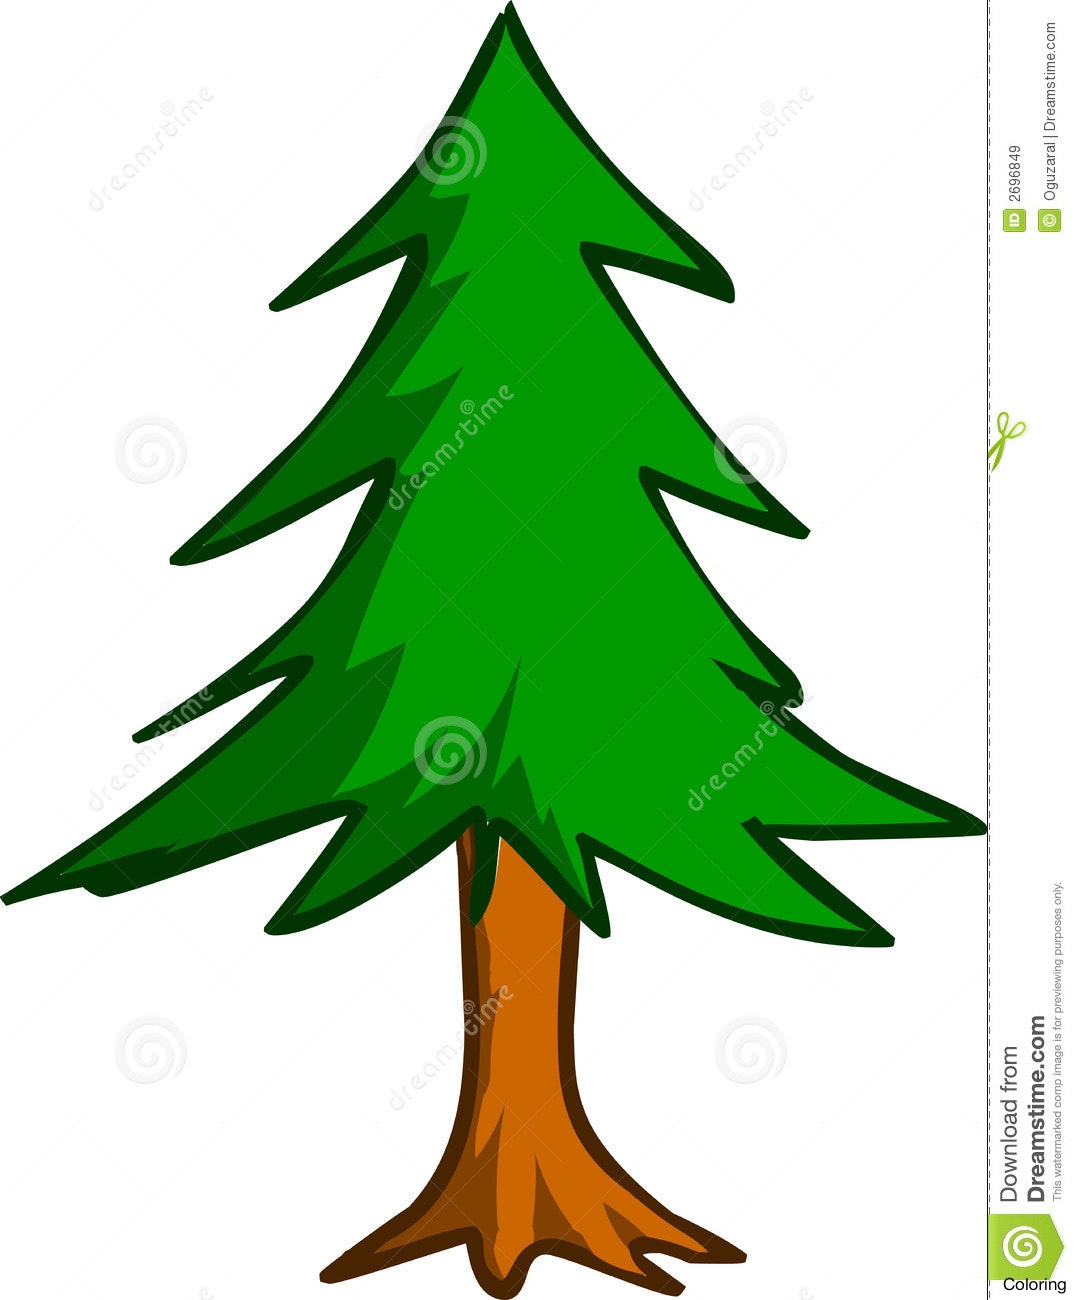 Tree Drawing Clip Art at GetDrawings.com | Free for personal use ...